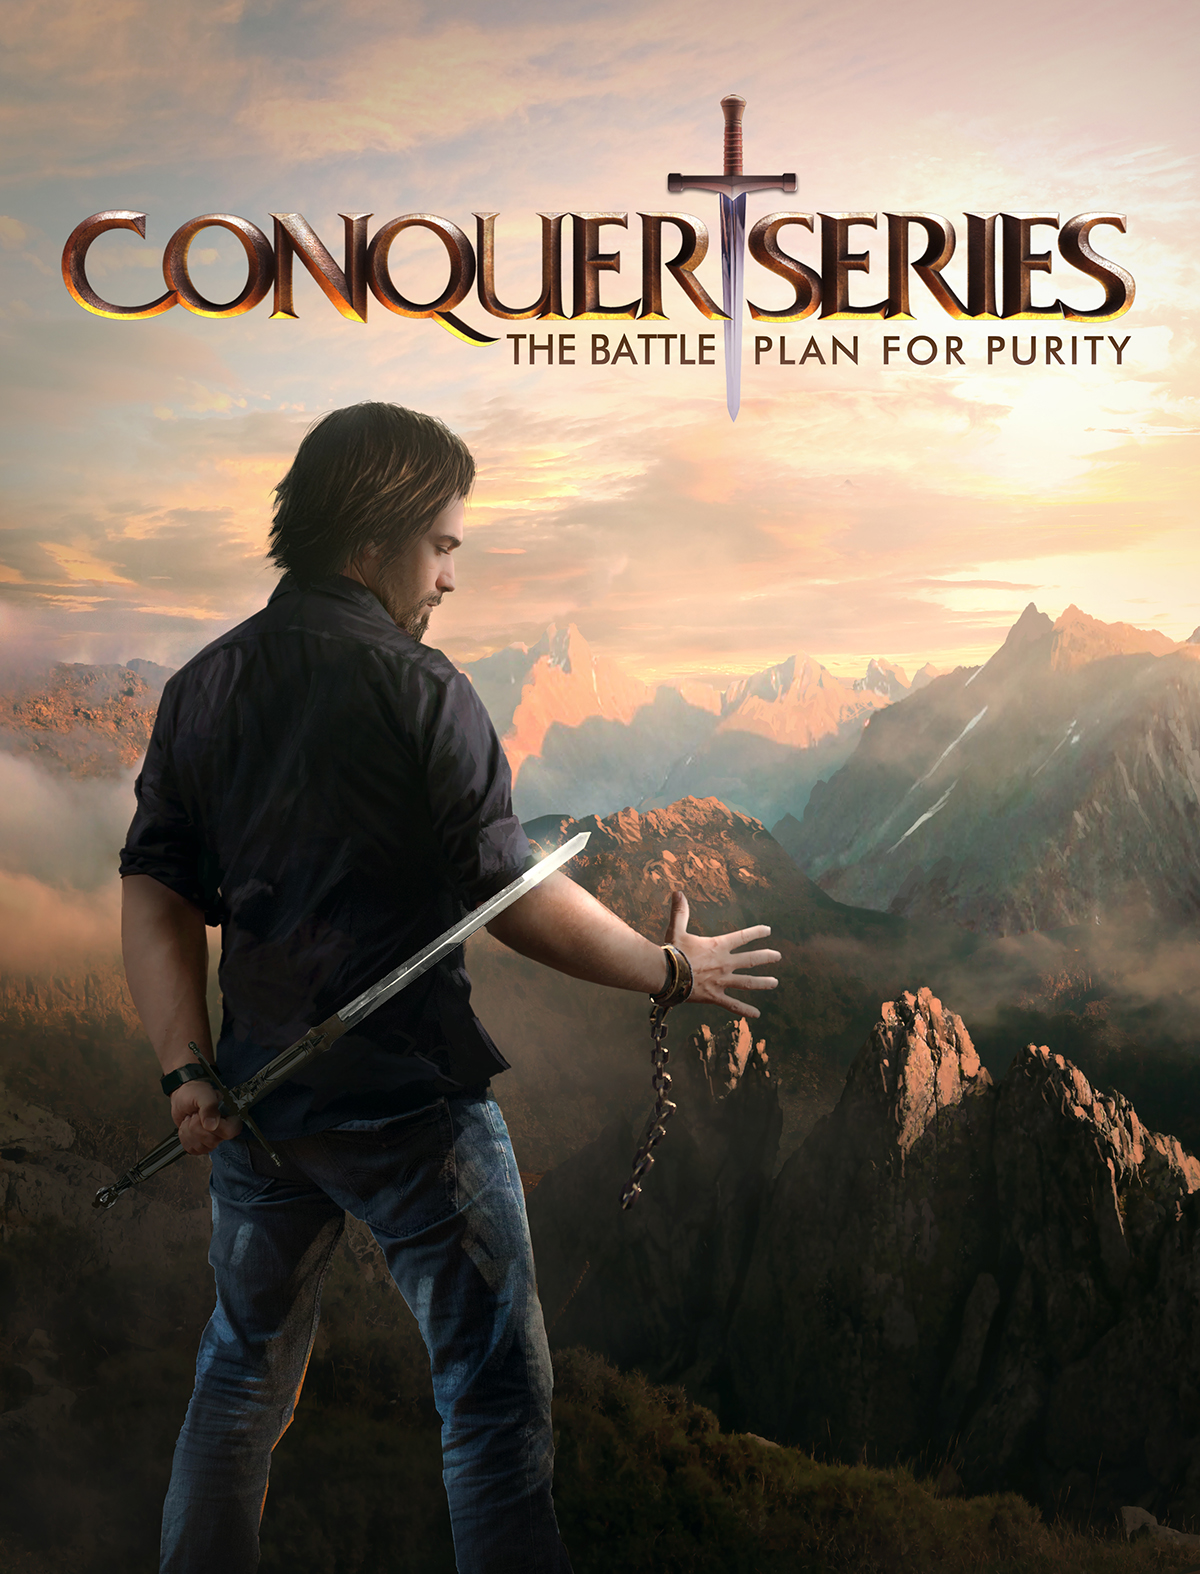 Conquer series poster